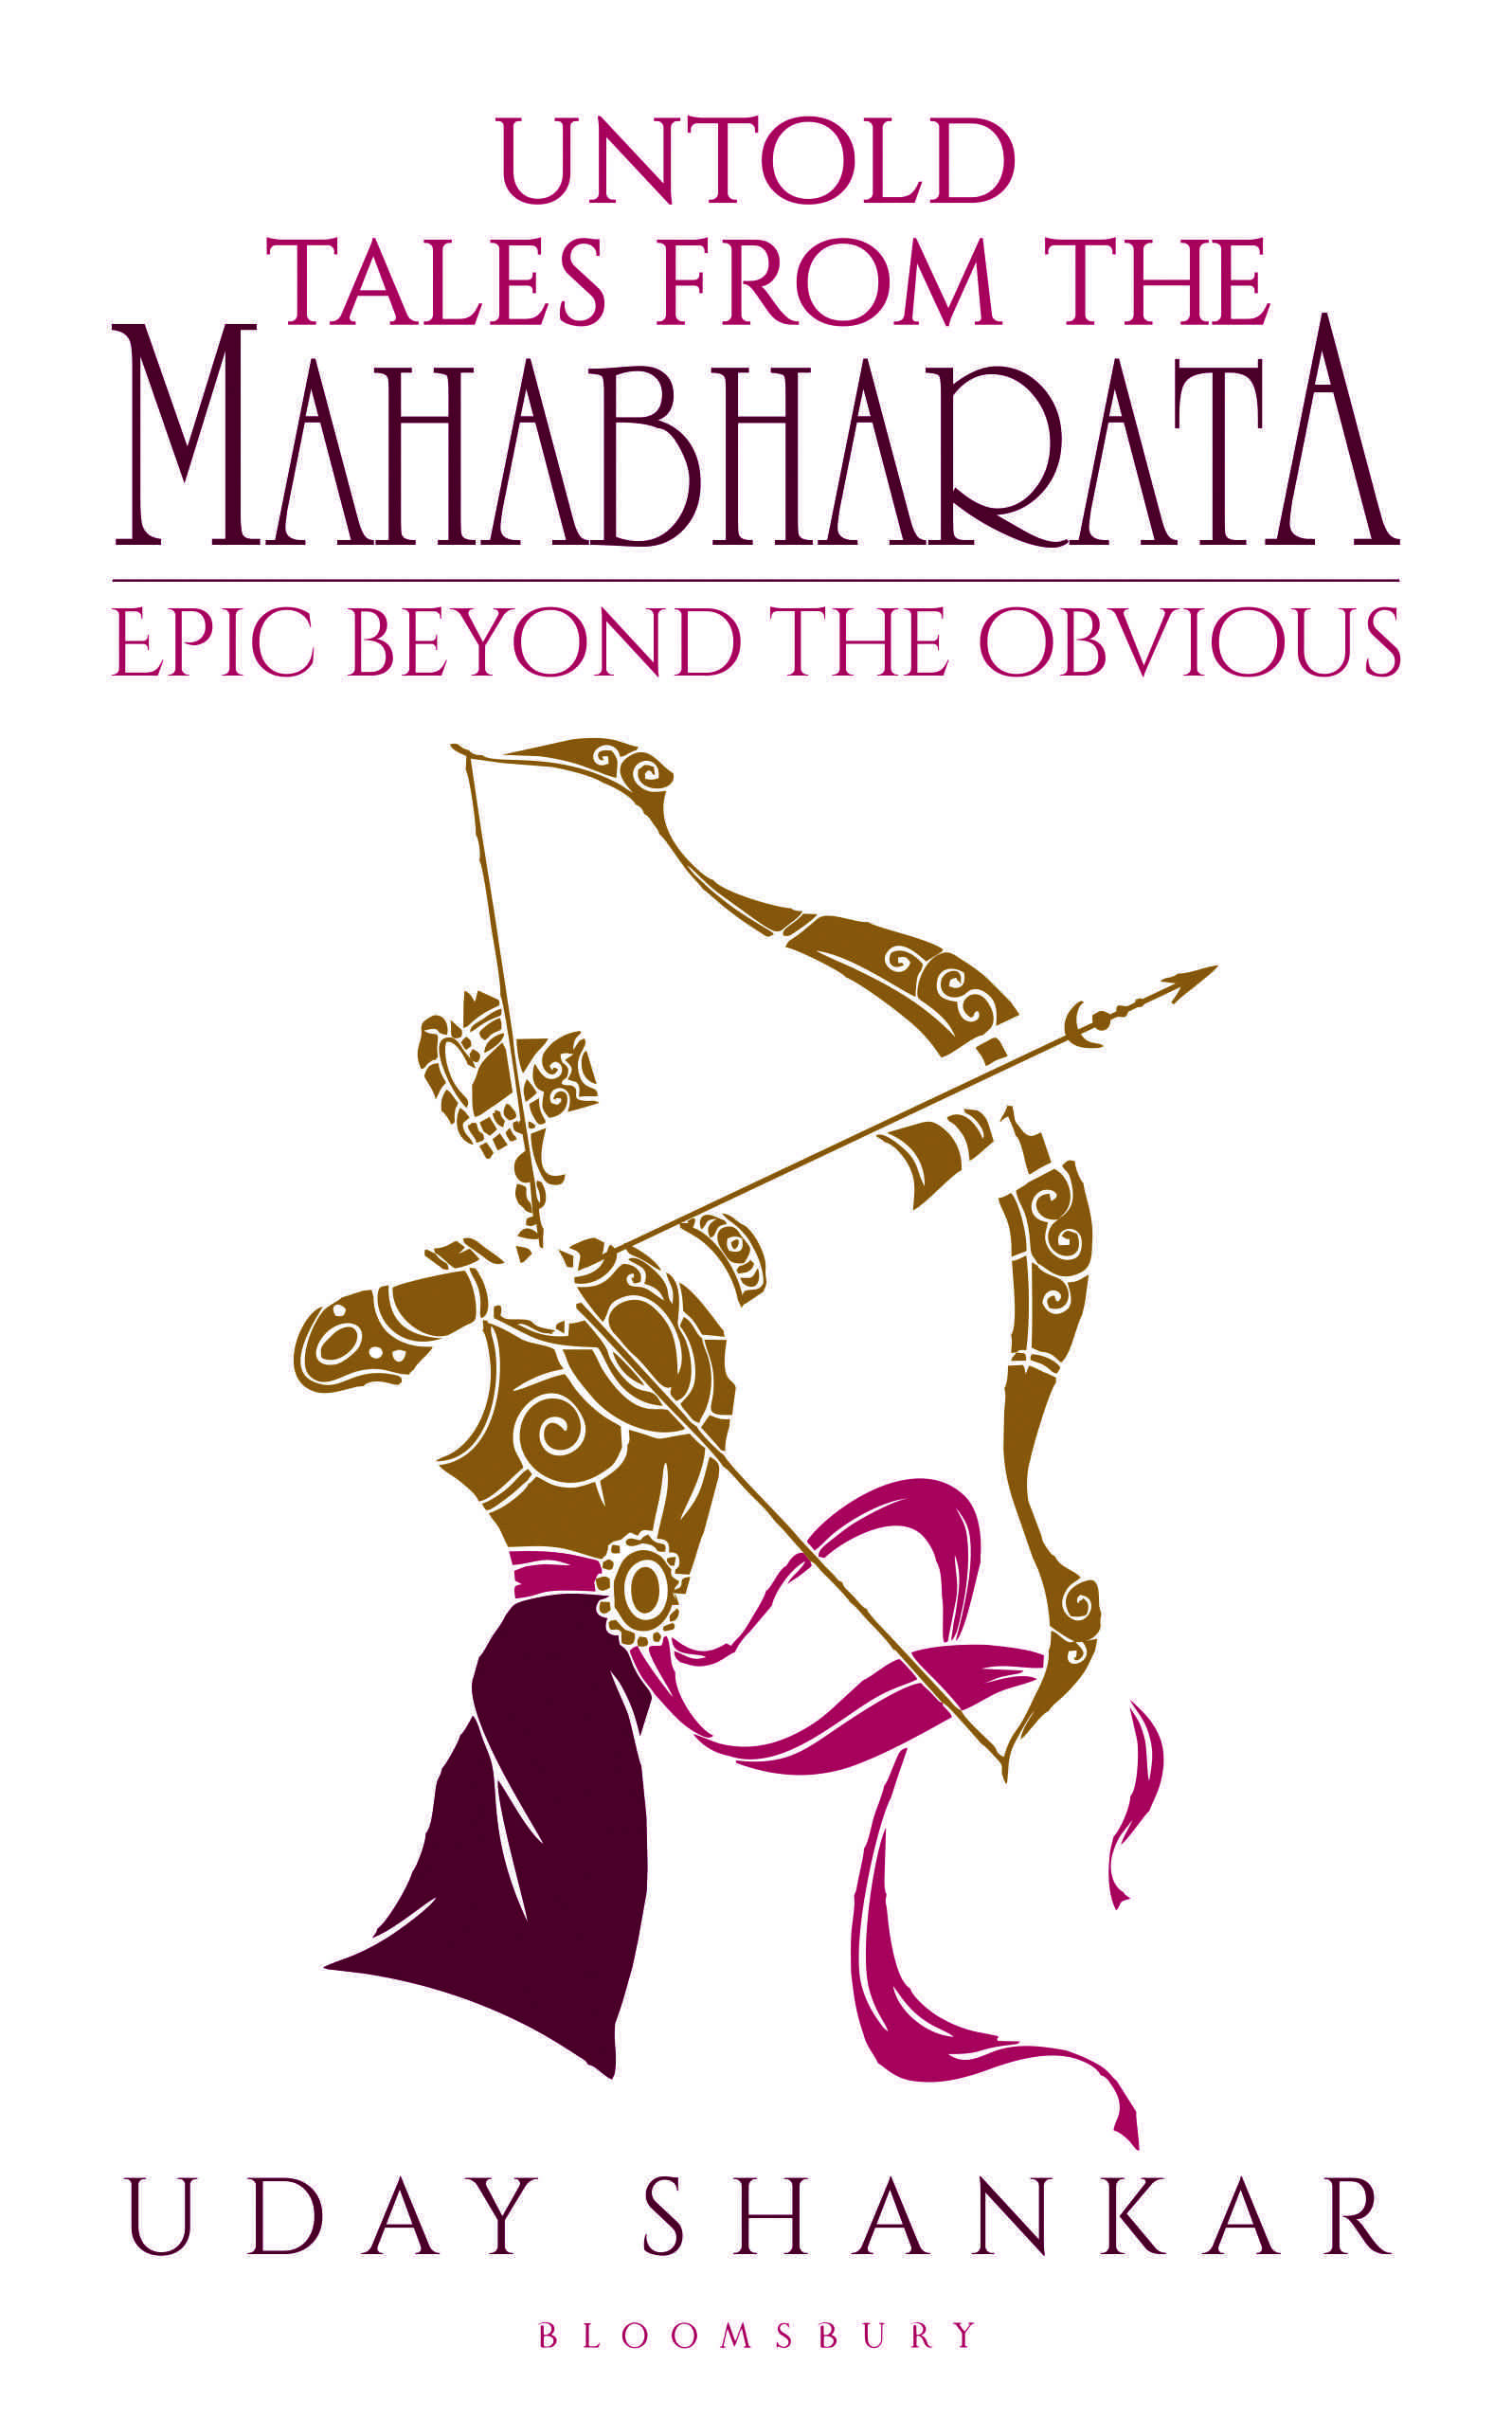 Untold Tales from the Mahabharata: The Epic beyond the Obvious